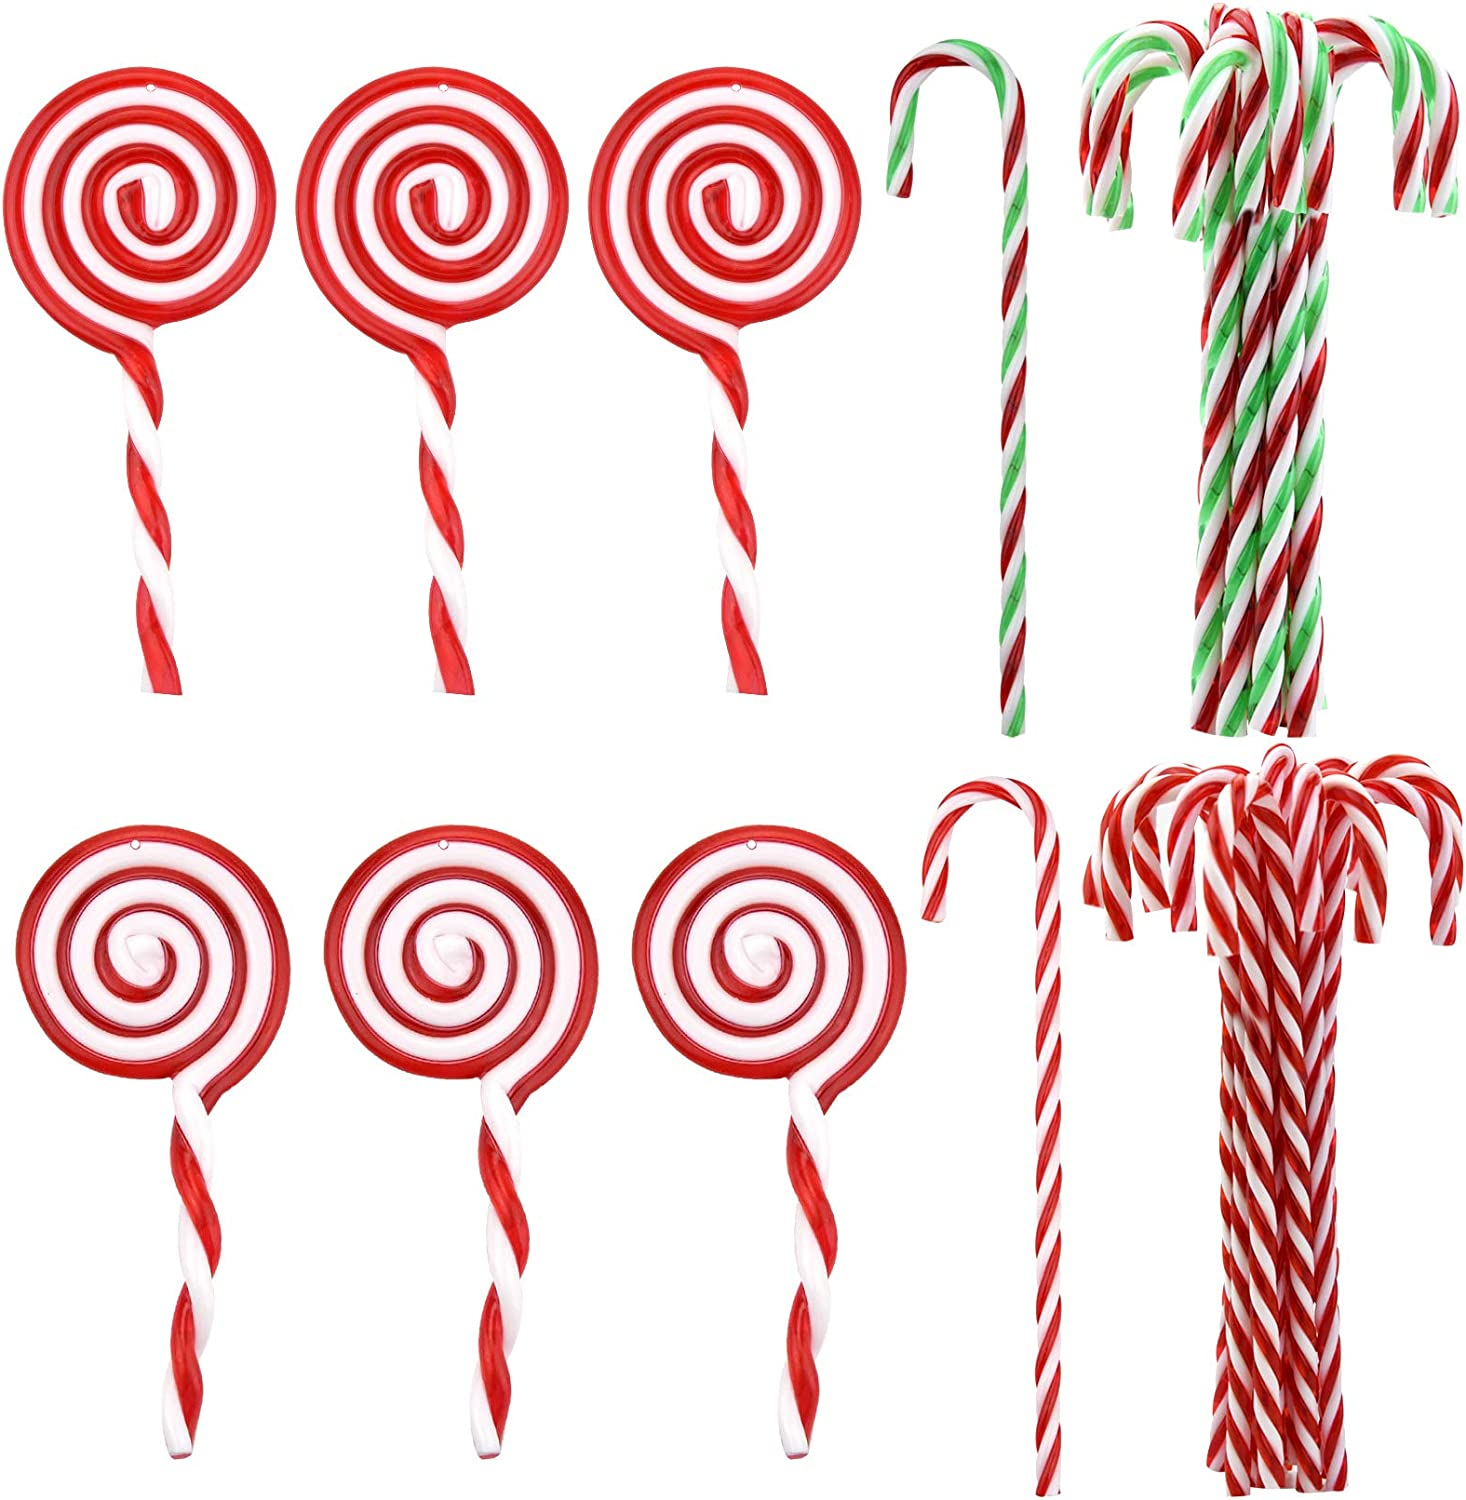 Jmkcoz Christmas Plastic Candy Cane Lollipop Ornament, 30 Pcs Christmas Tree Hanging Decoration Twisted Toy Crutch Candy Canes Stick for Home Party Holiday Xmas Embellishment ( Red White and Green )